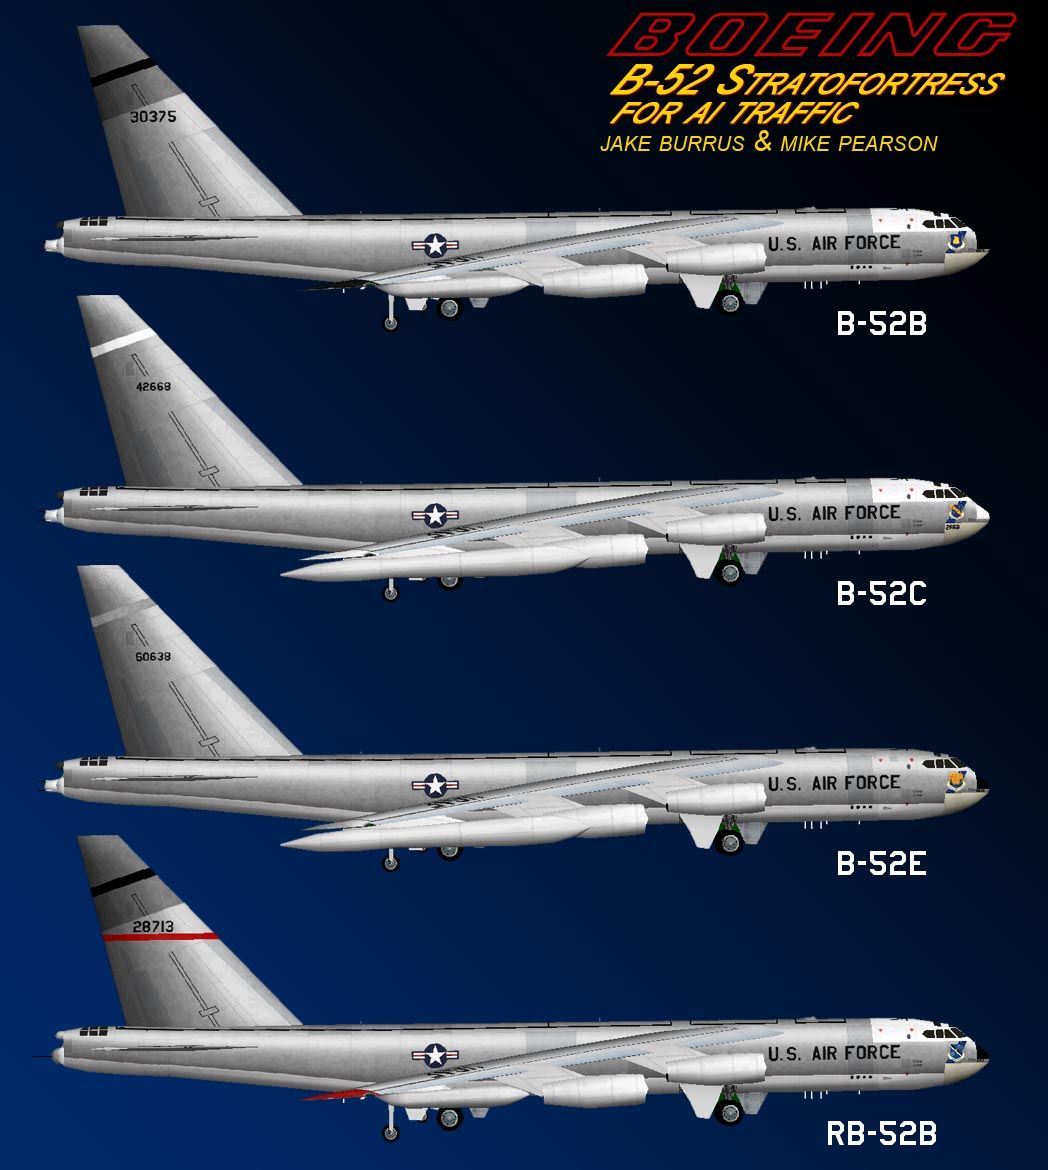 Boeing B 52 Stratofortress Of The U S Air Force History: B 52 Stratofortress, Usaf, United States Air Force